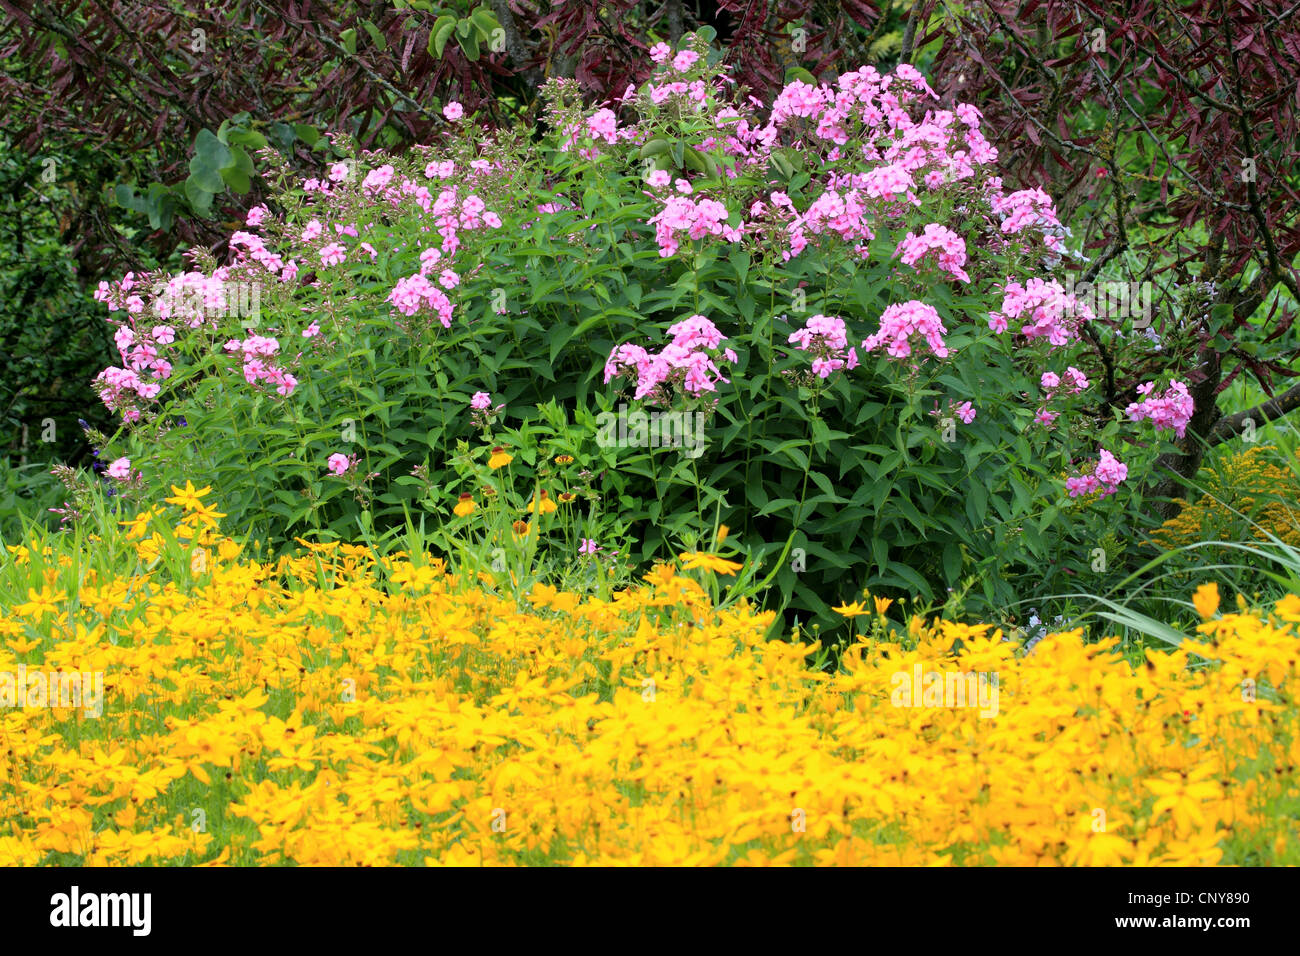 Garden Phlox phlox Paniculata In Full Bloom Stock Photo Royalty